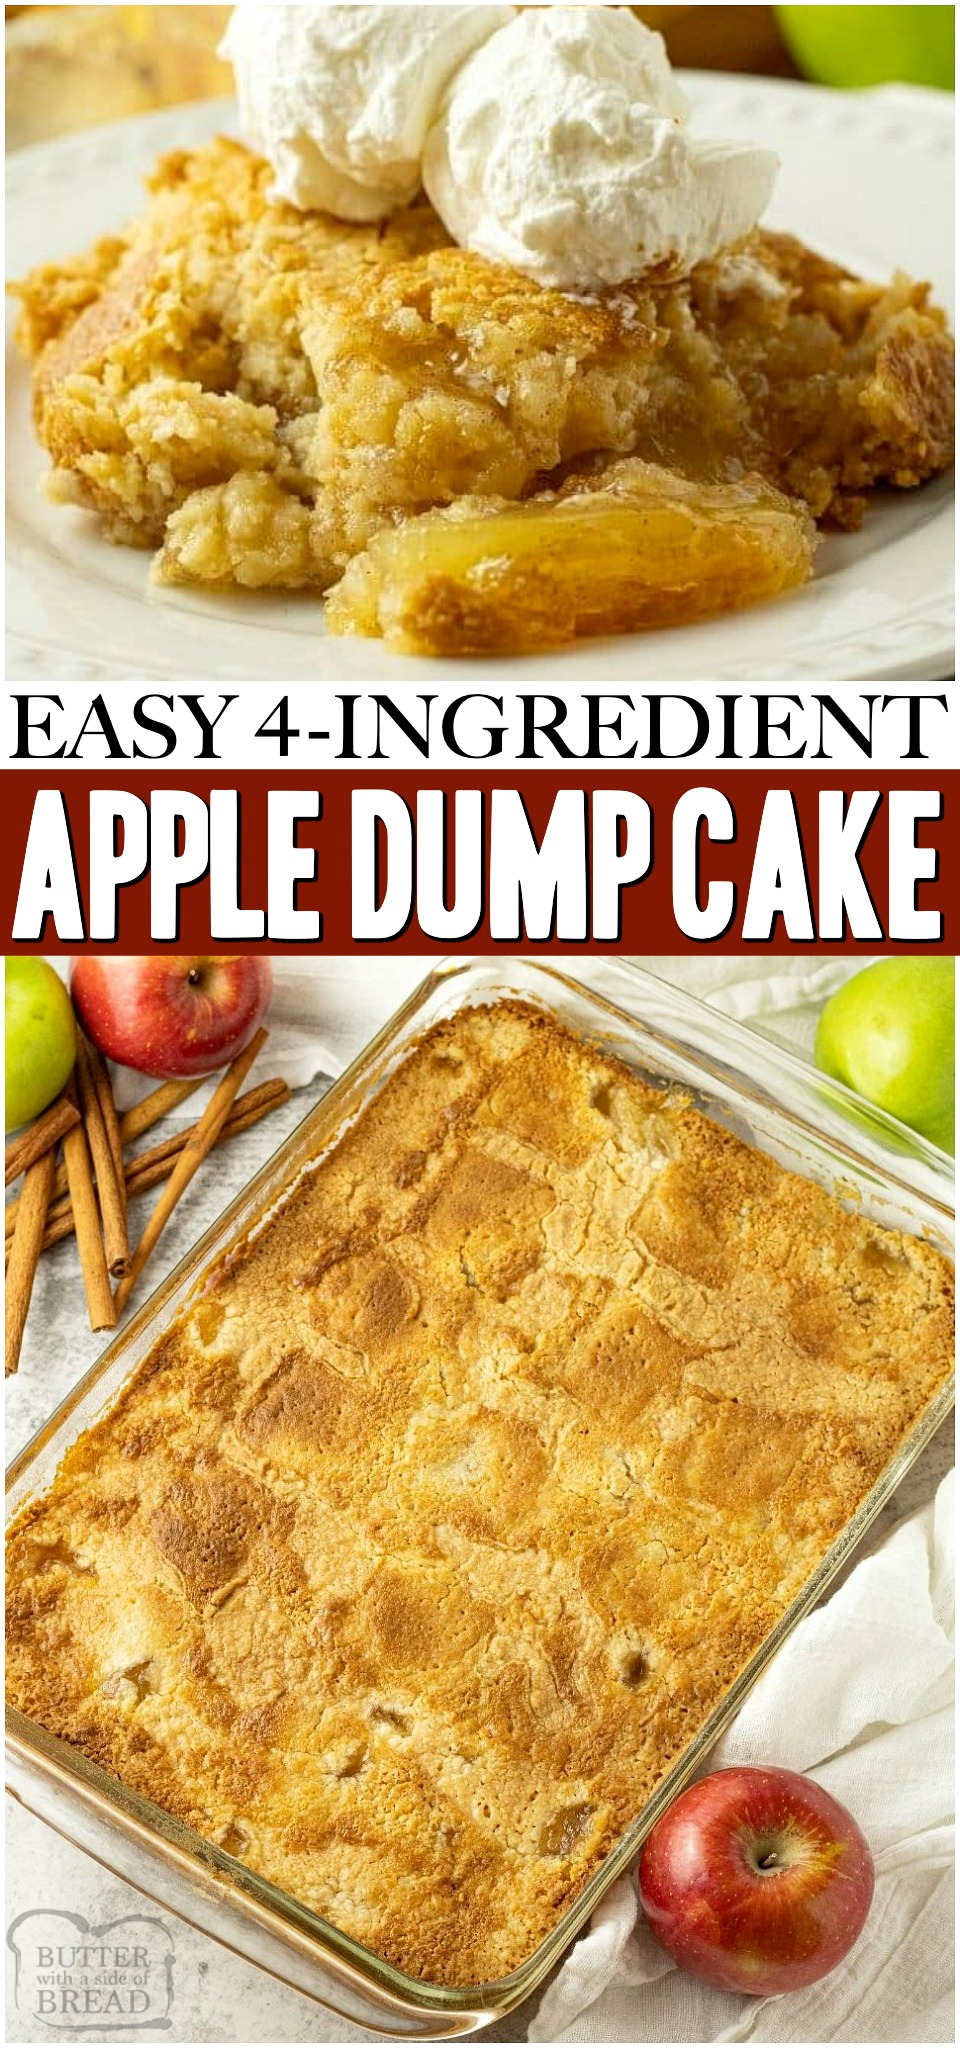 Easy Apple Dump Cake recipe with just 4 simple pantry ingredients! Cake mix & apple pie filling transform into a delicious apple dessert perfect for any occasion. #cake #apples #dumpcake #applecinnamon #butter #dessert #baking #recipe from BUTTER WITH A SIDE OF BREAD